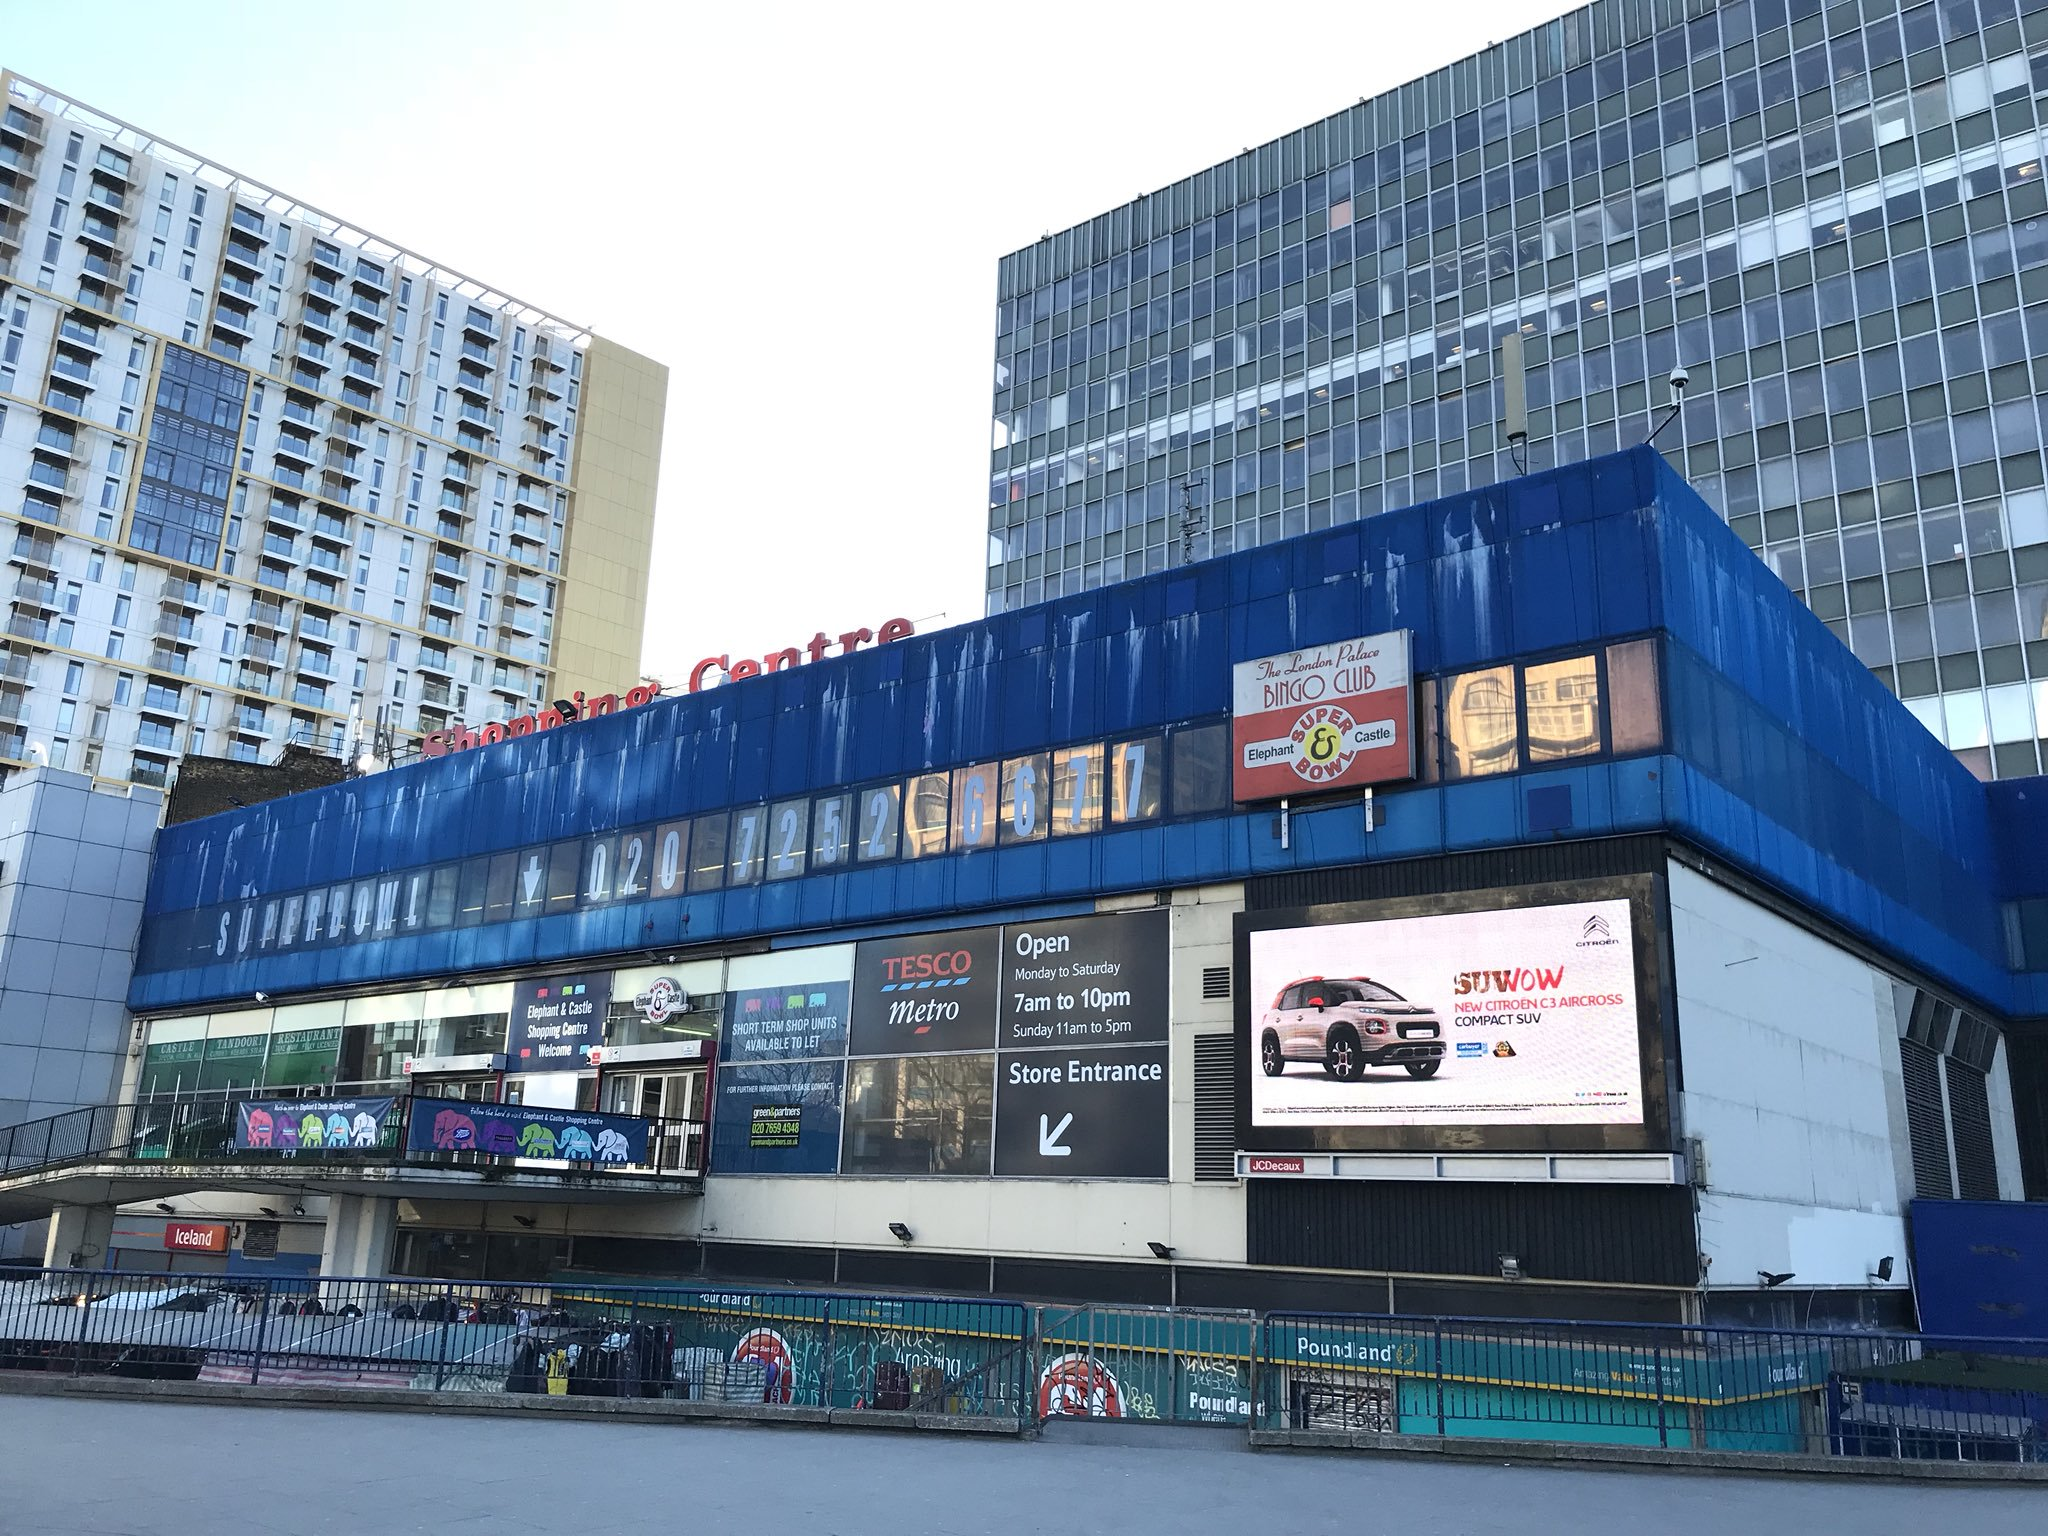 Elephant & Castle Shopping Centre: bid made for listed status